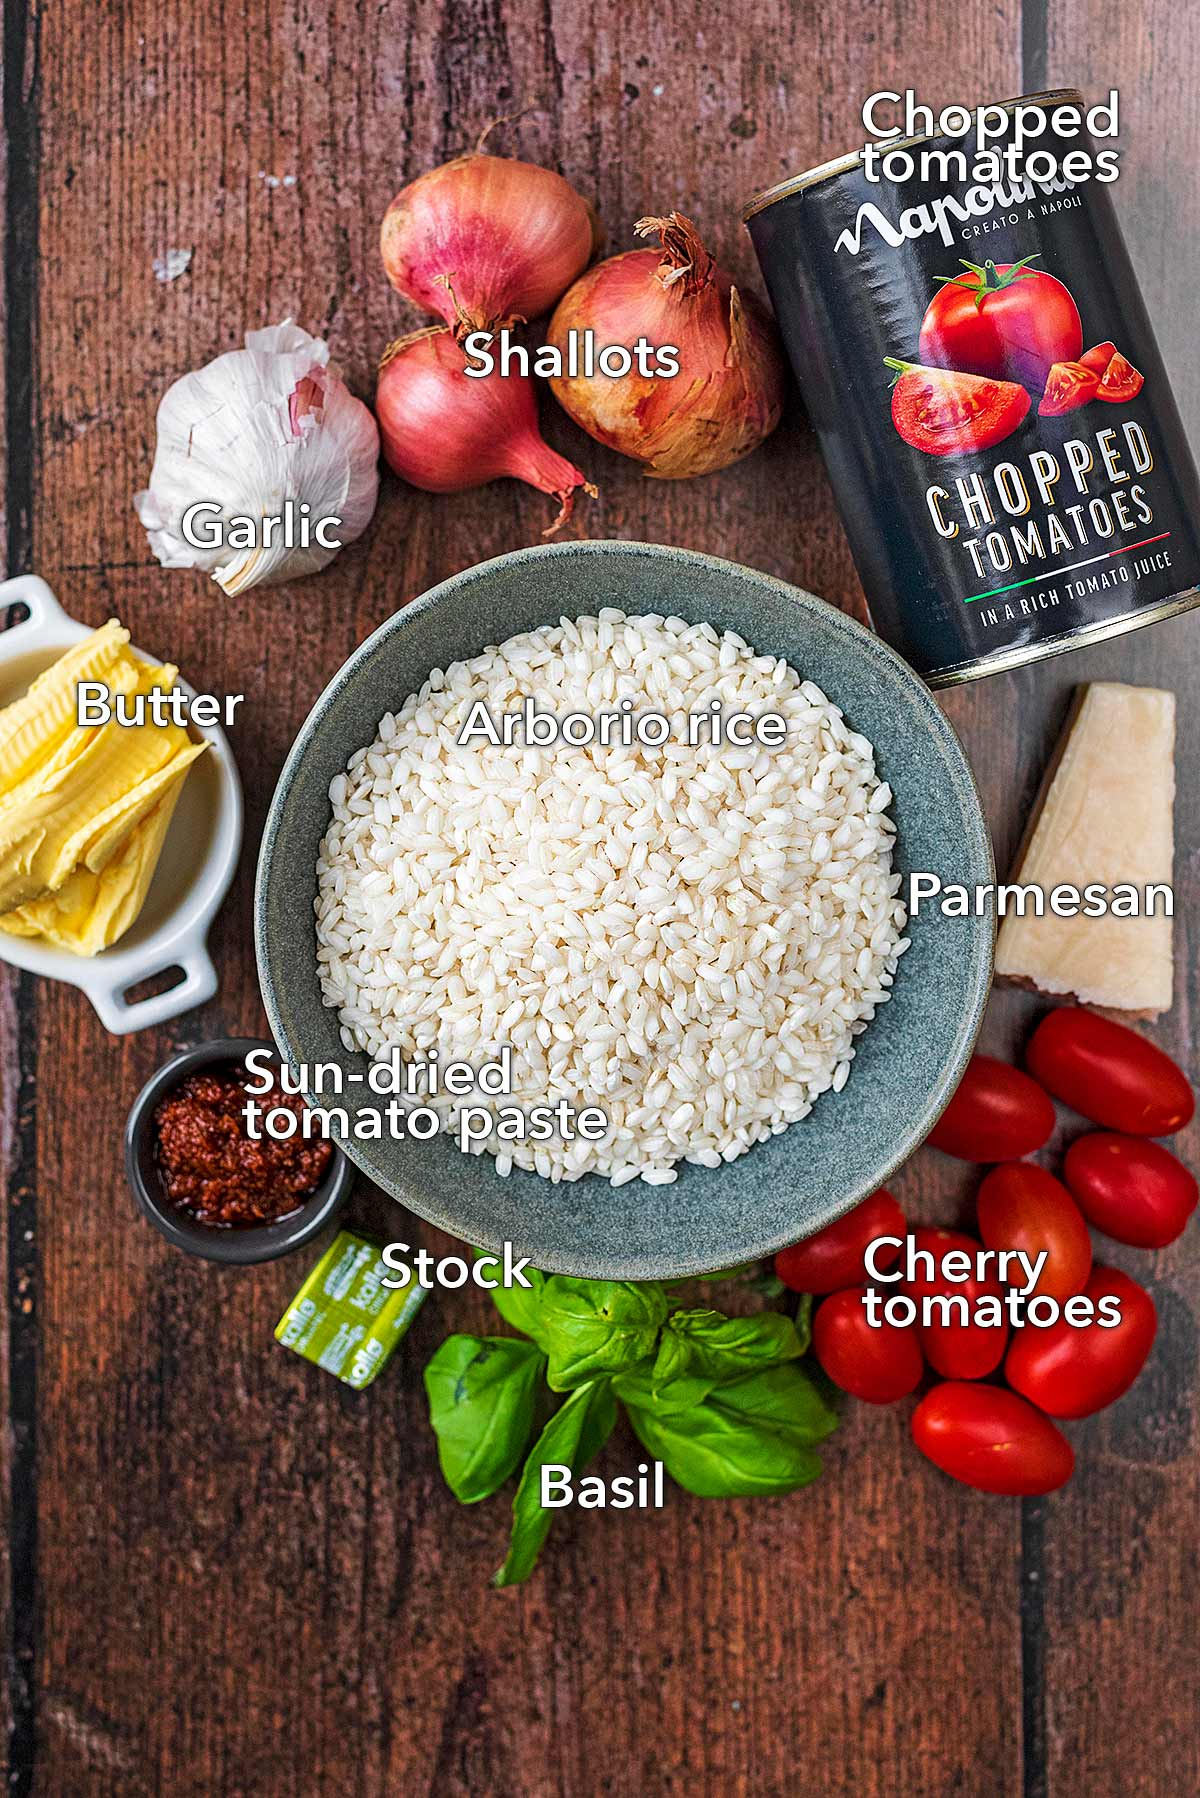 All the ingredients needed to make this recipe laid out on a wooden surface.